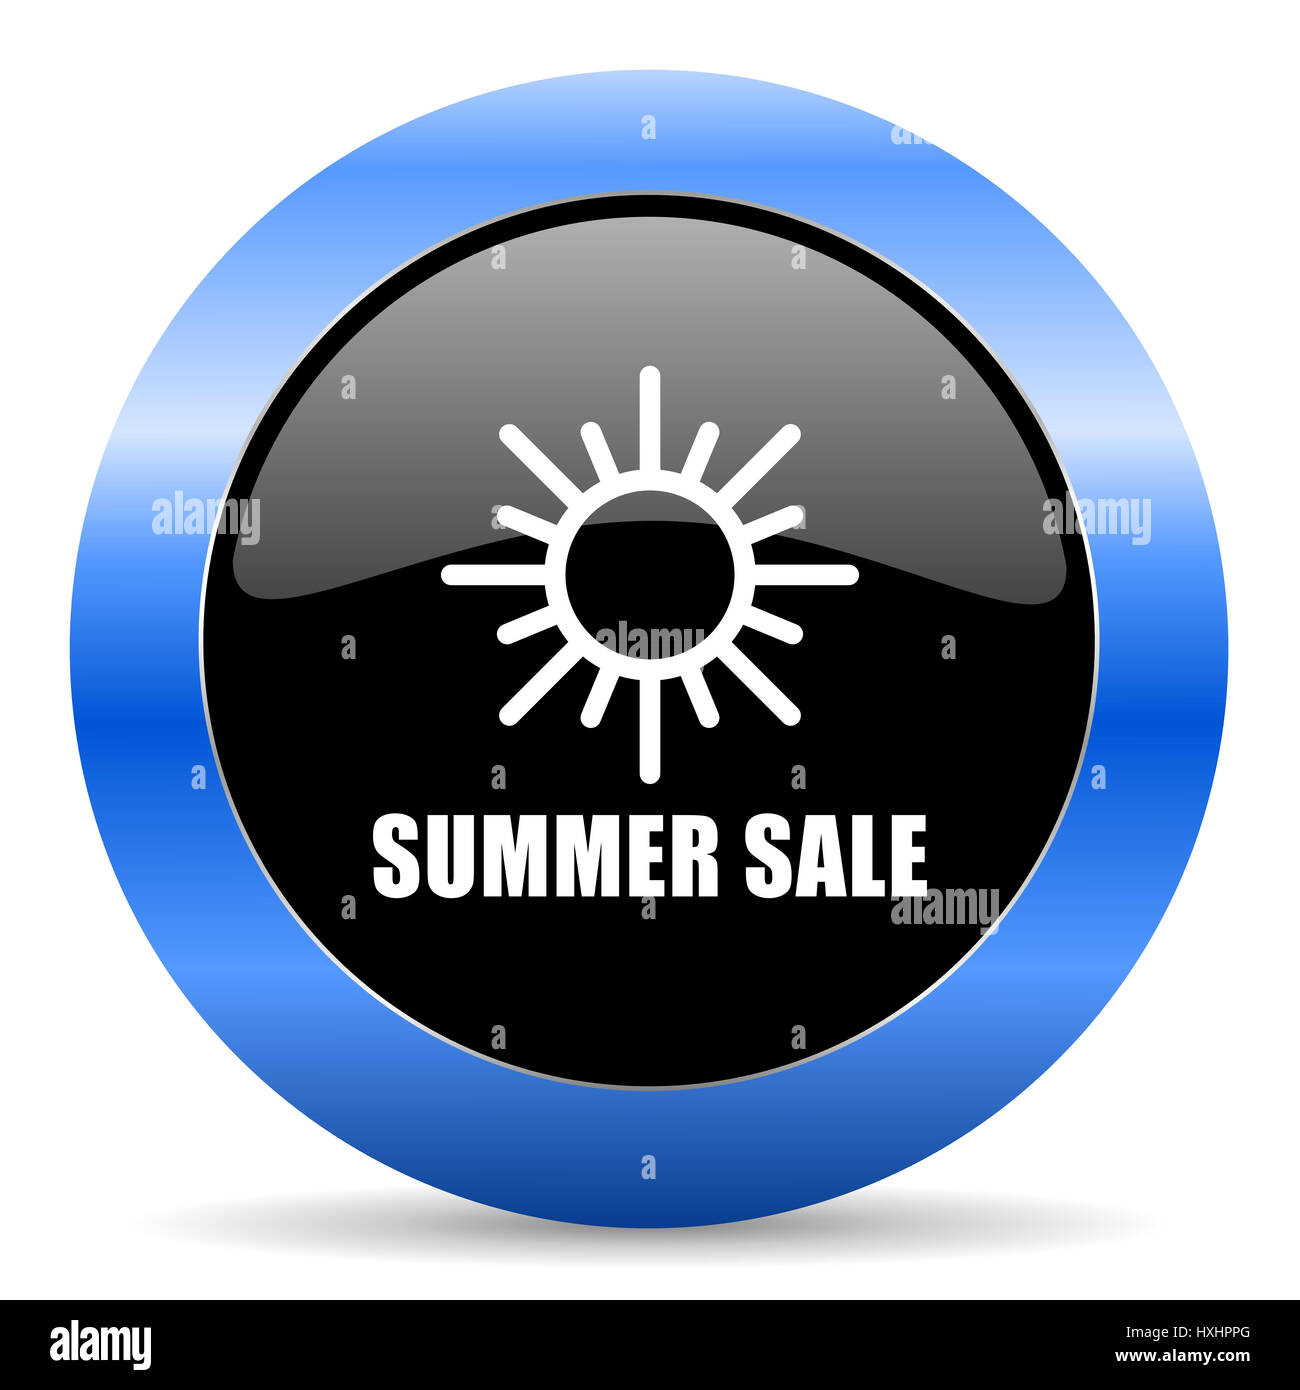 Summer sale black and blue web design round internet icon with shadow on white background. - Stock Image